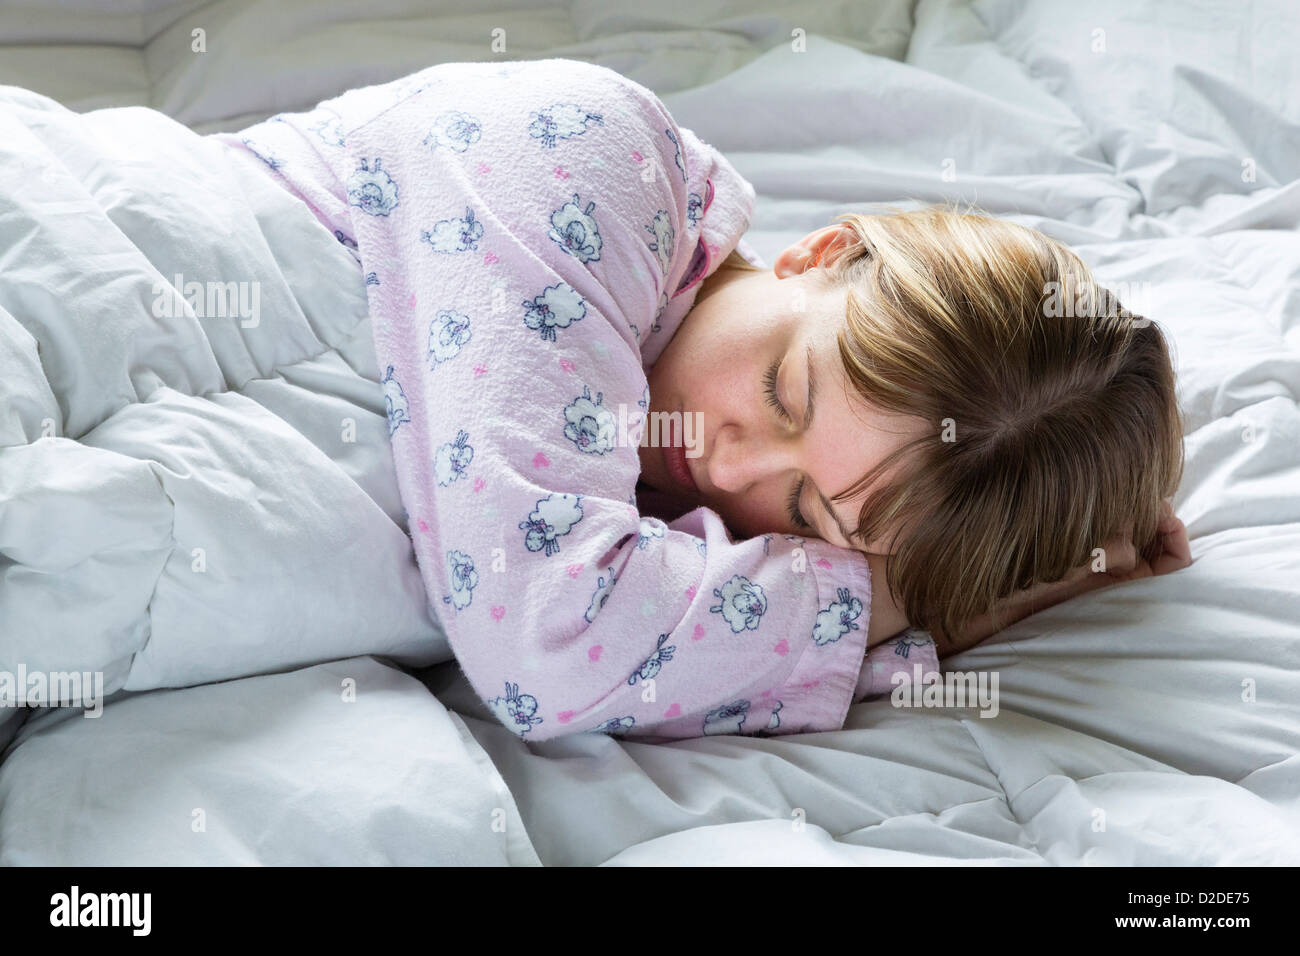 young woman asleep in bed - Stock Image